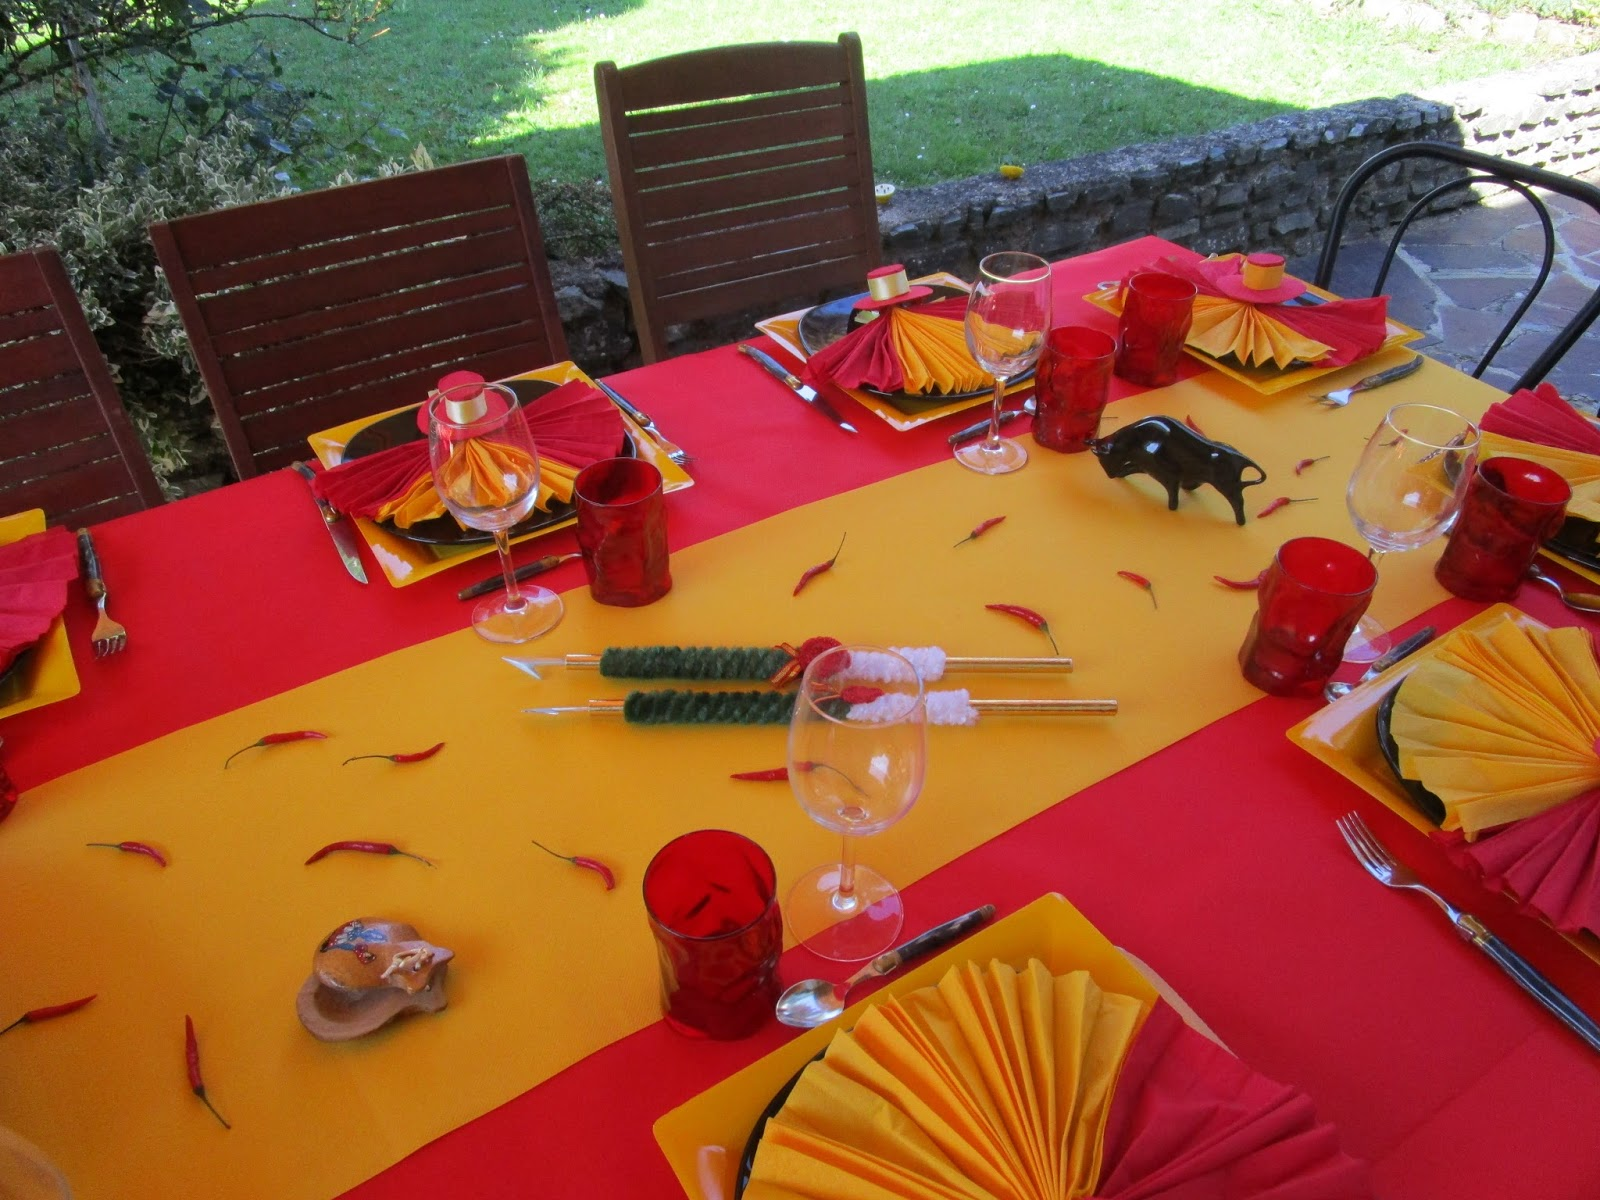 Deco De Table A Themes Deco De Table Espagnole